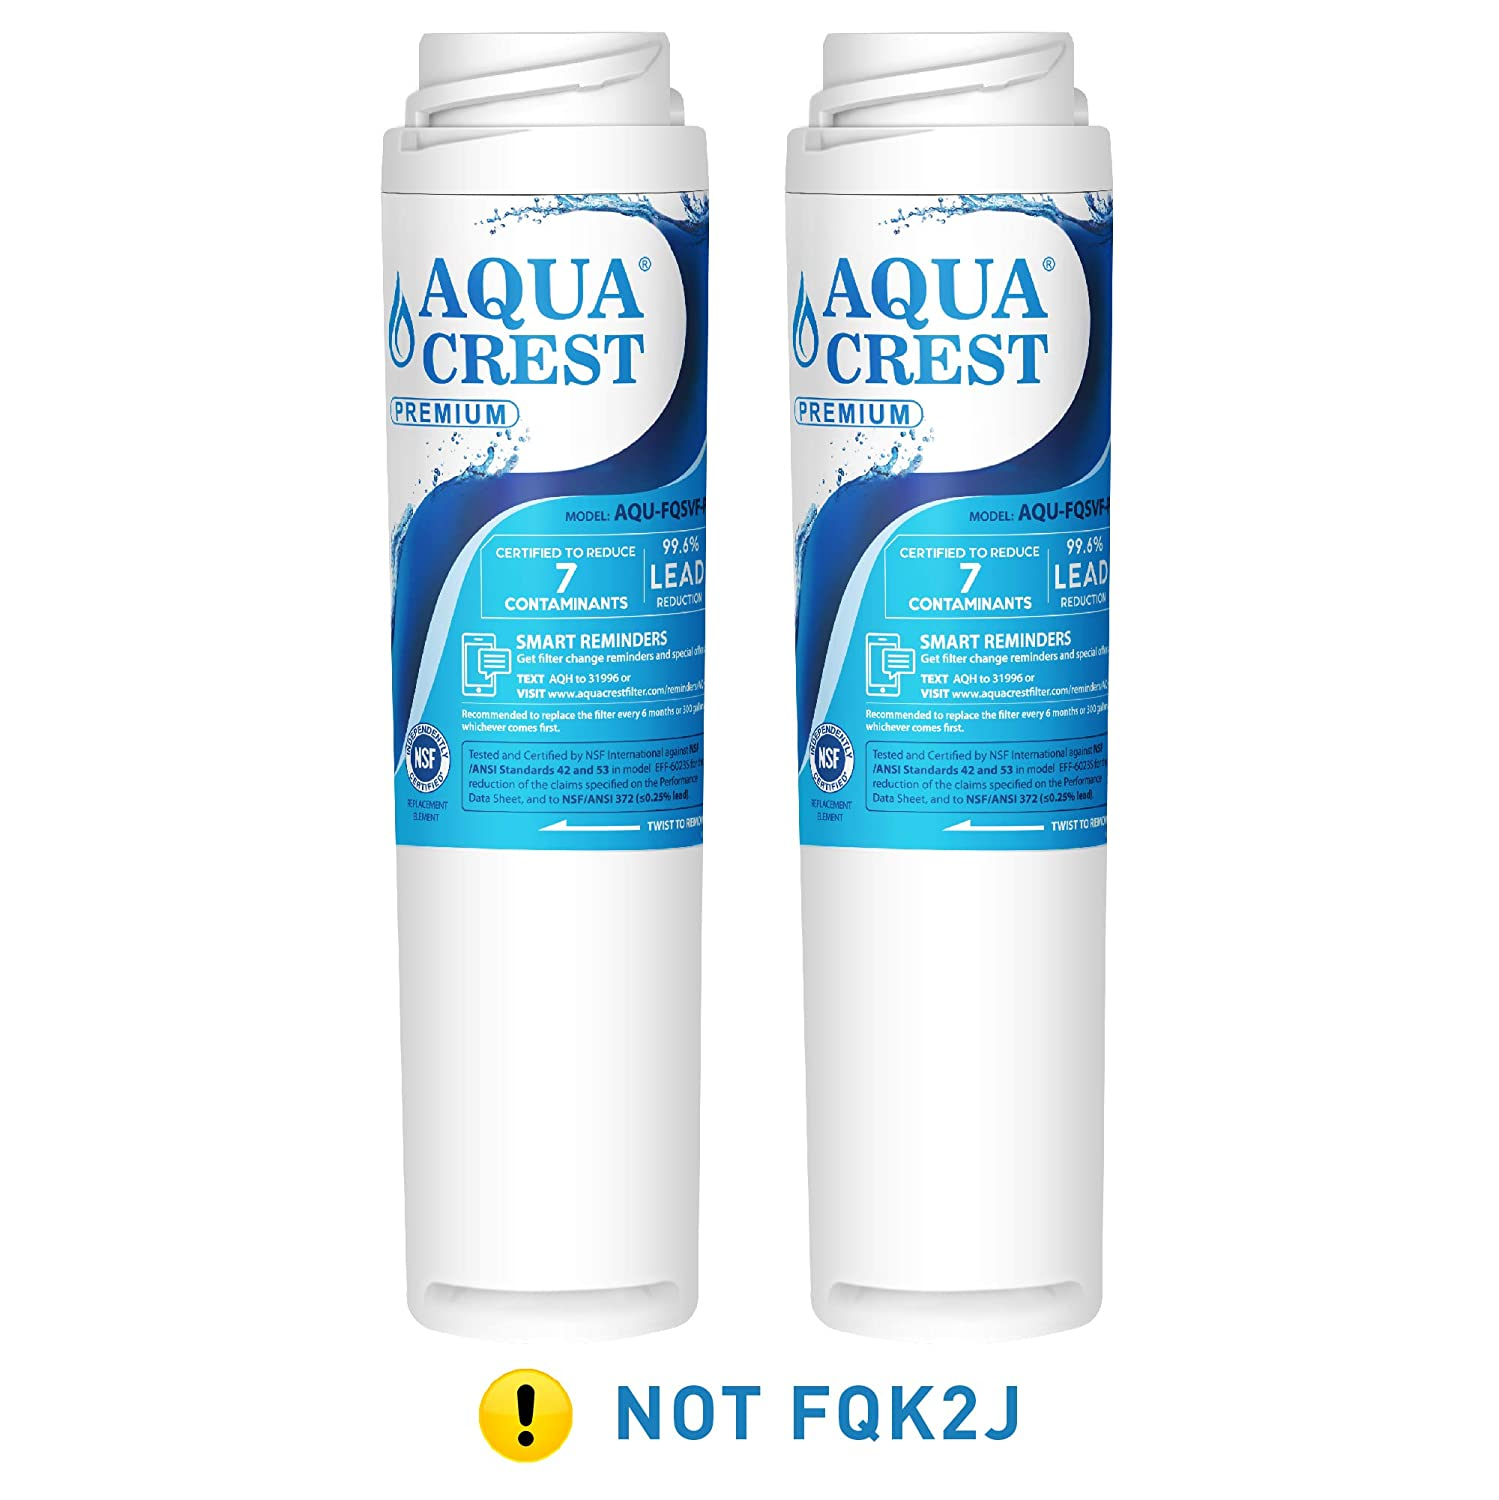 AQUACREST FQSVF NSF 53 Certified to Reduce 99% Lead and More, Compatible with GE FQSVF, GXSV65R (1 Set)